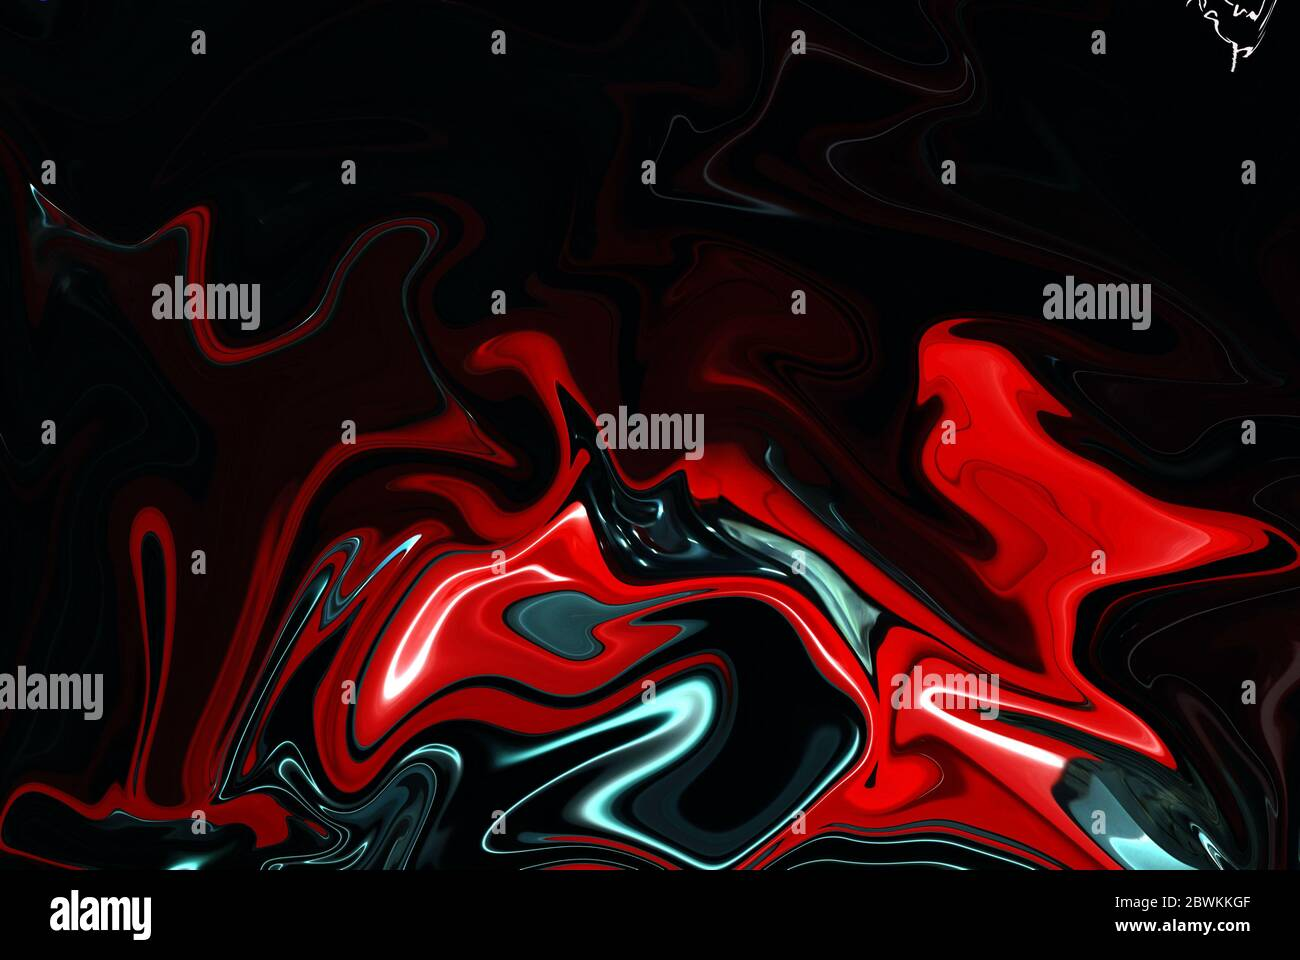 Red And Black Marble Pattern With High Resolution Can Be Used For Background Or Wallpaper Granite Marbling Stock Photo Alamy